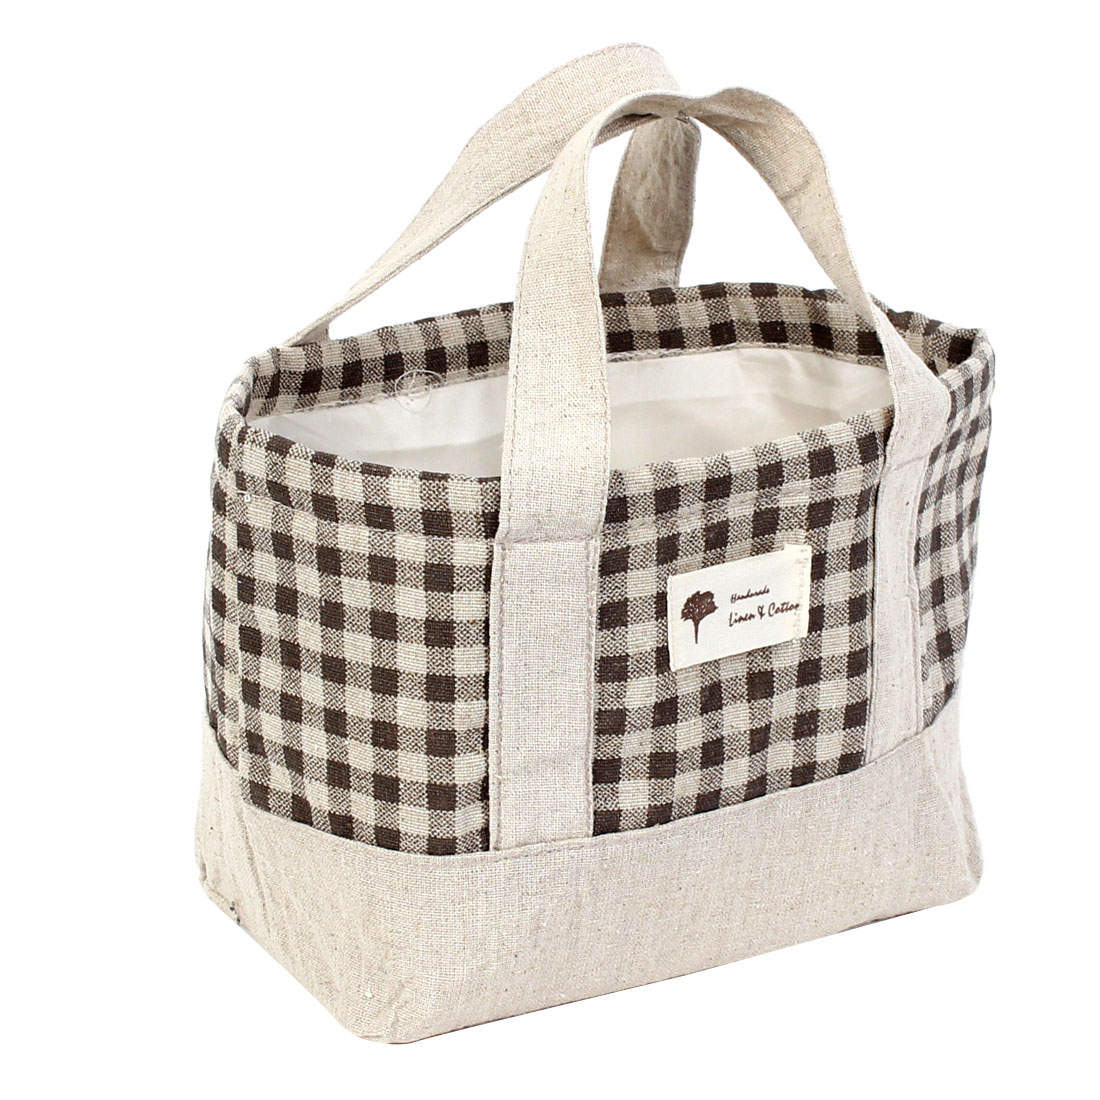 Insulated Cooler Thermal Picnic Lunch Tote Box Storage Bag